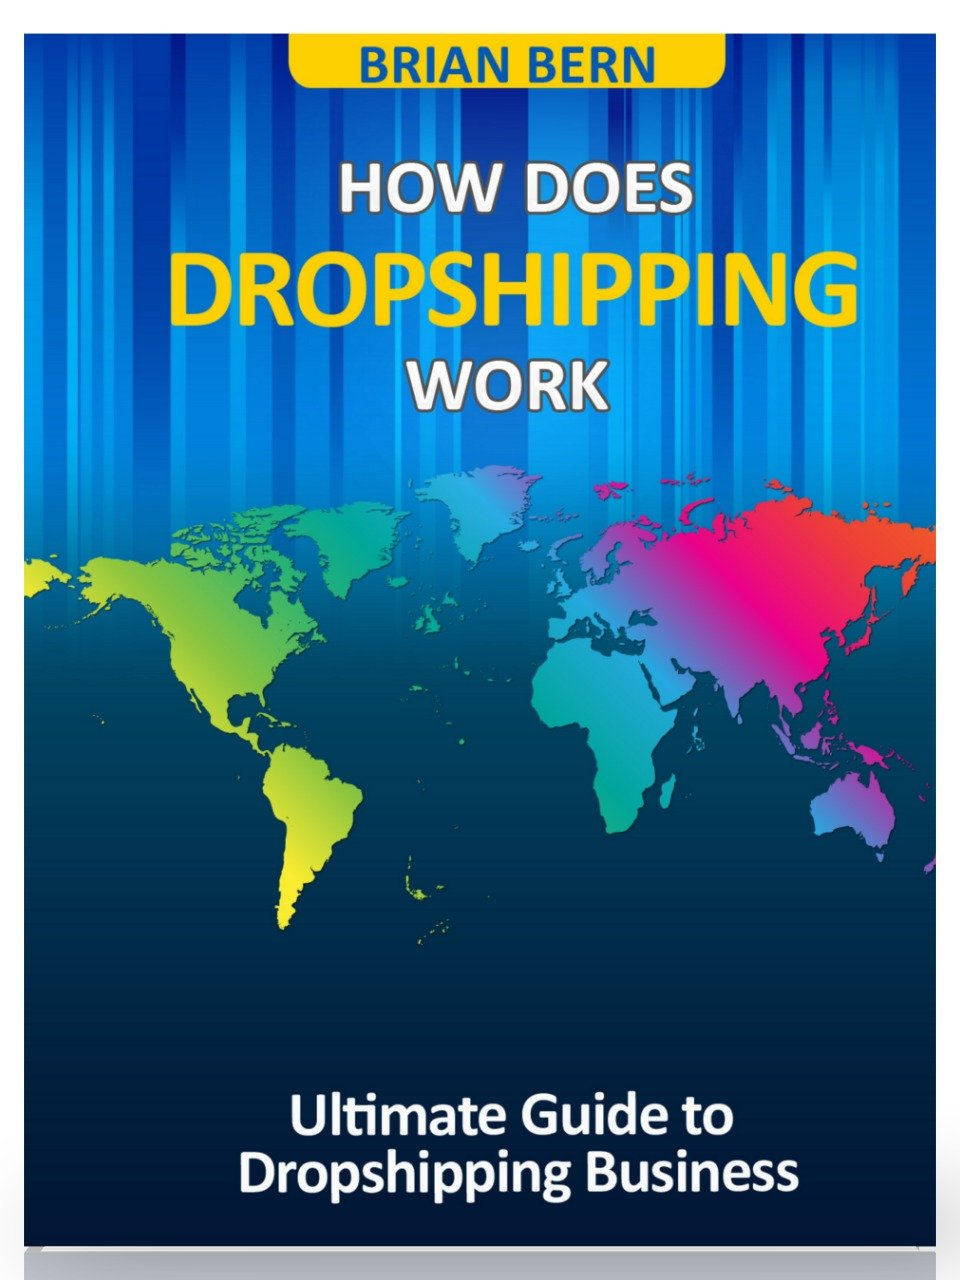 How does Dropshipping work - Start Your Own Business Today!